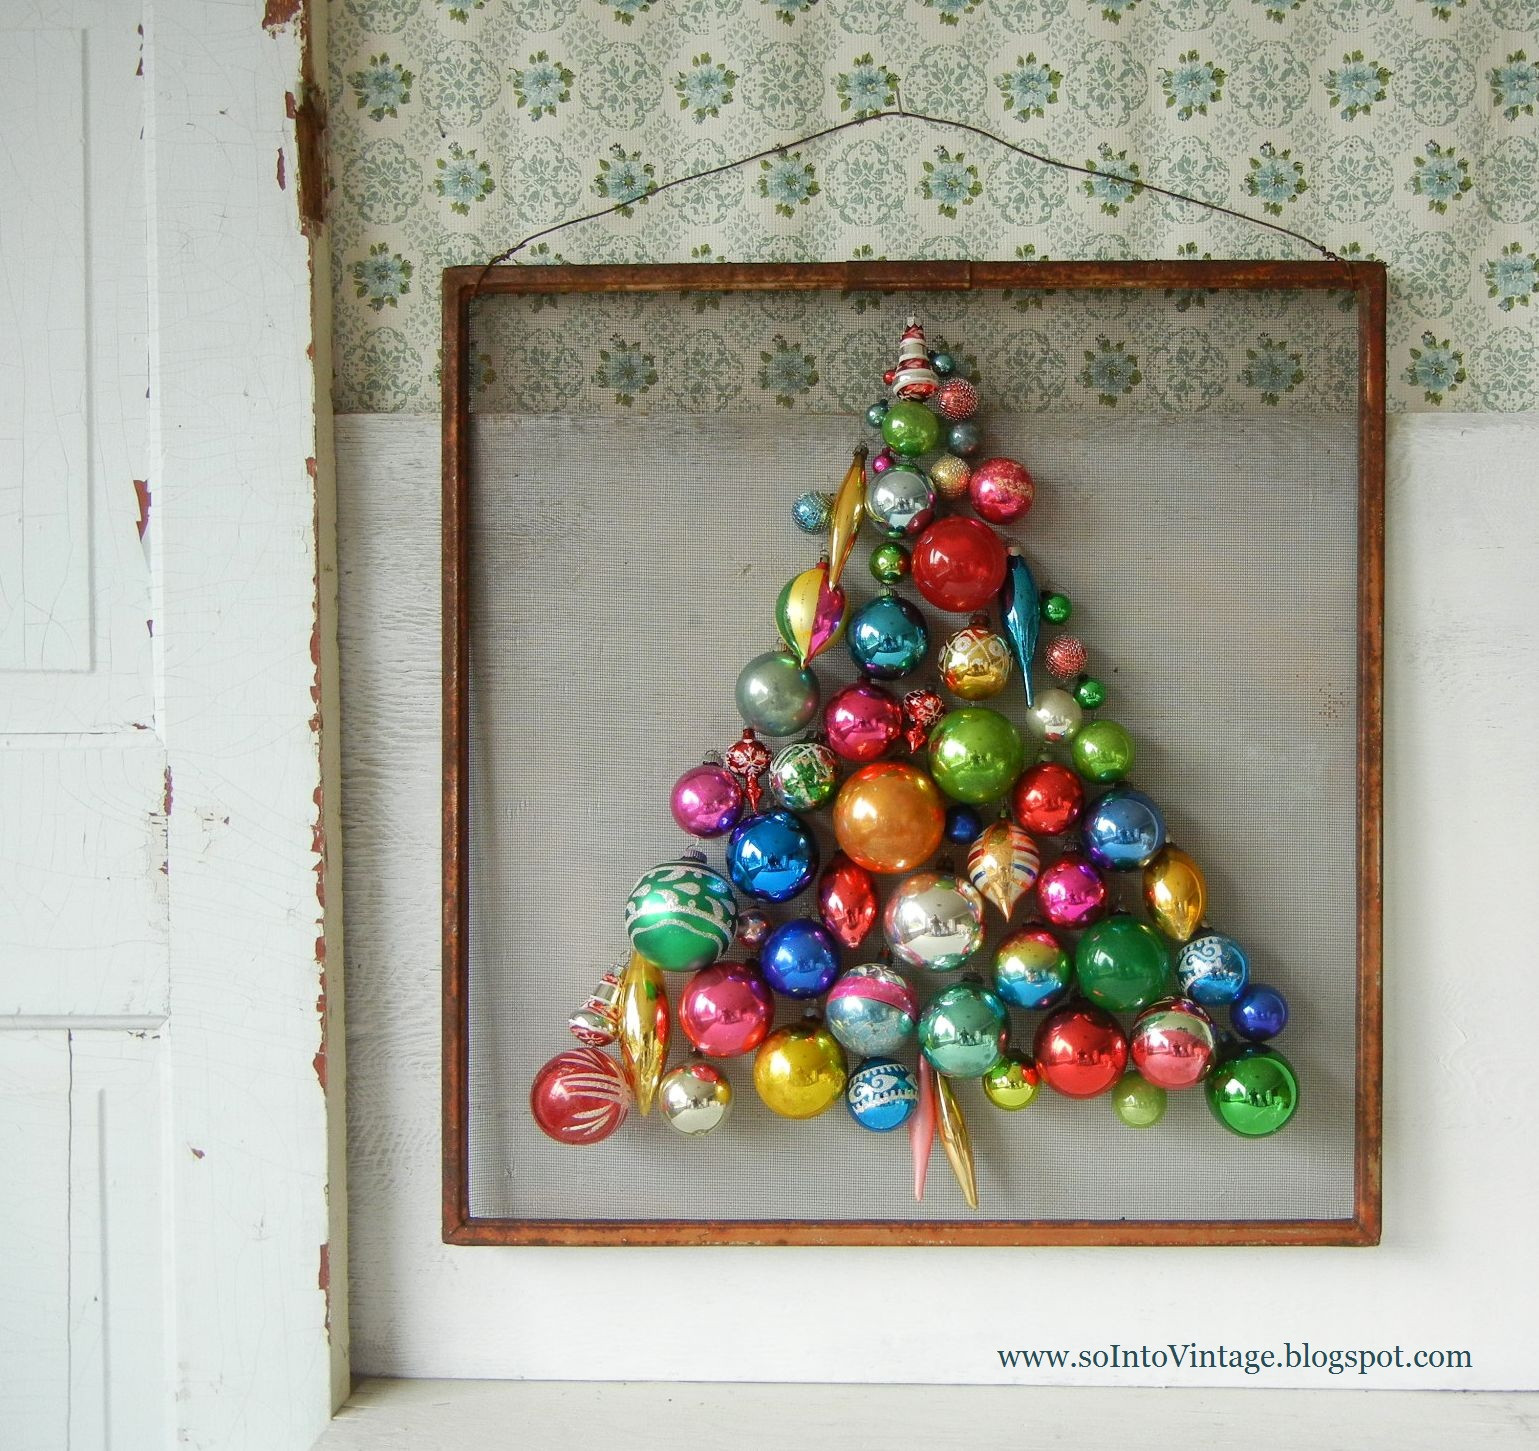 Unique 20 Fun and Stylish Alternative Christmas Trees ornaments On Christmas Tree Of Delightful 46 Images ornaments On Christmas Tree